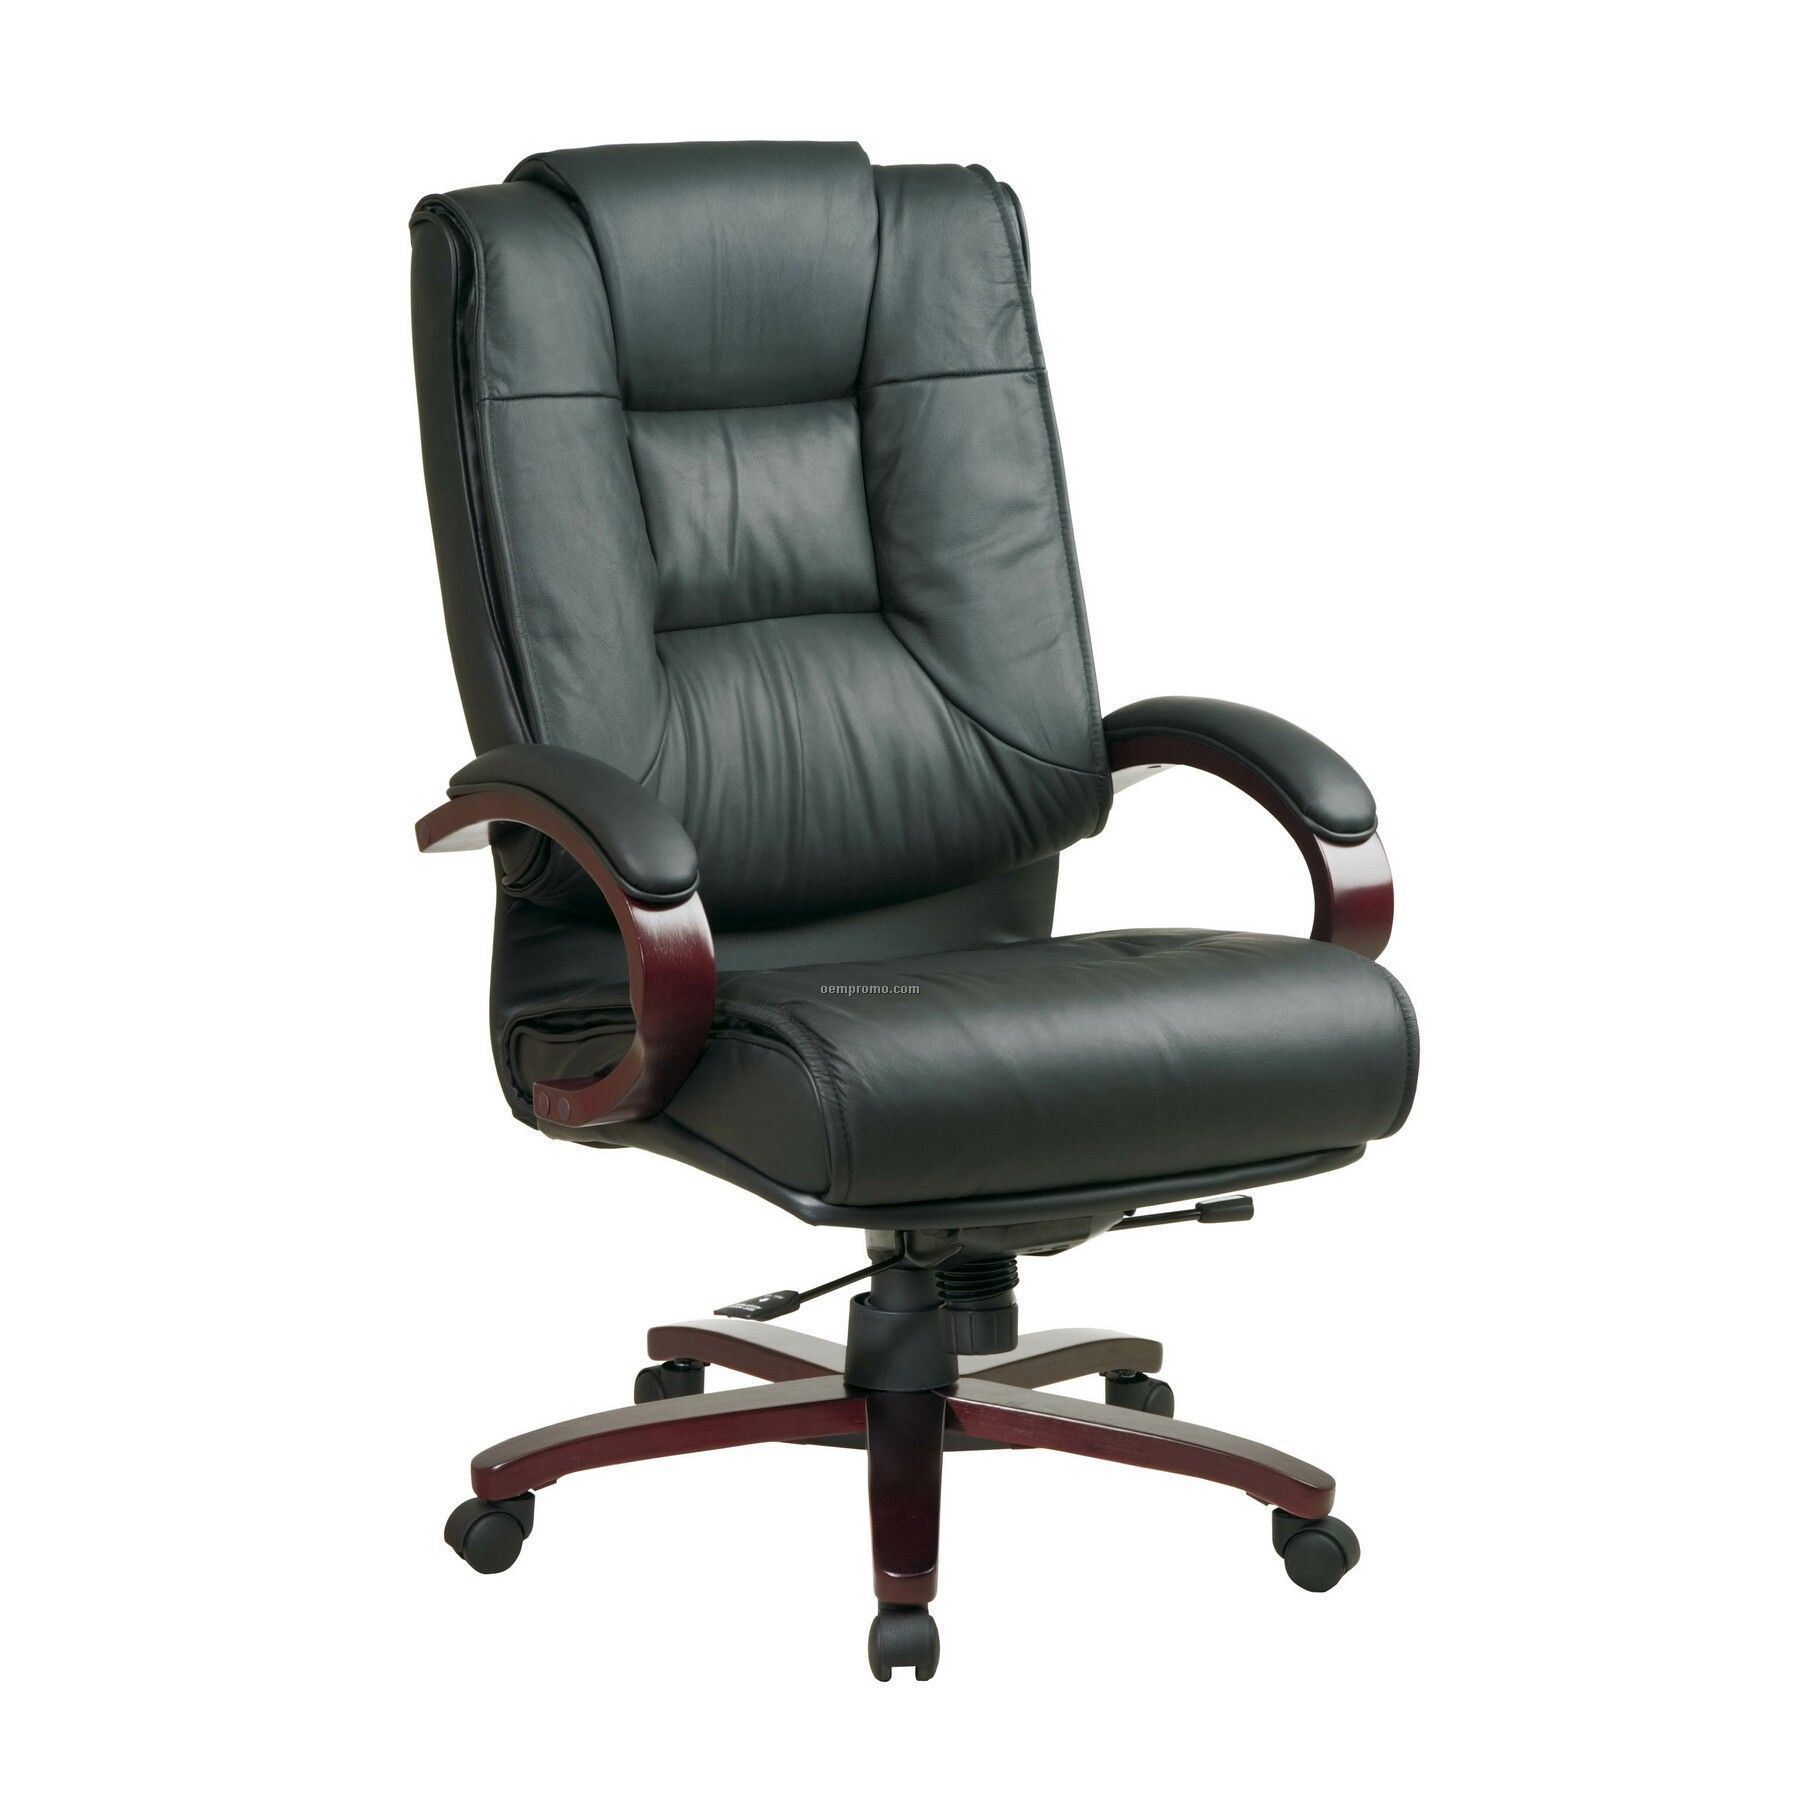 leather chair office biokinesis exercises for seniors dvd chairs black